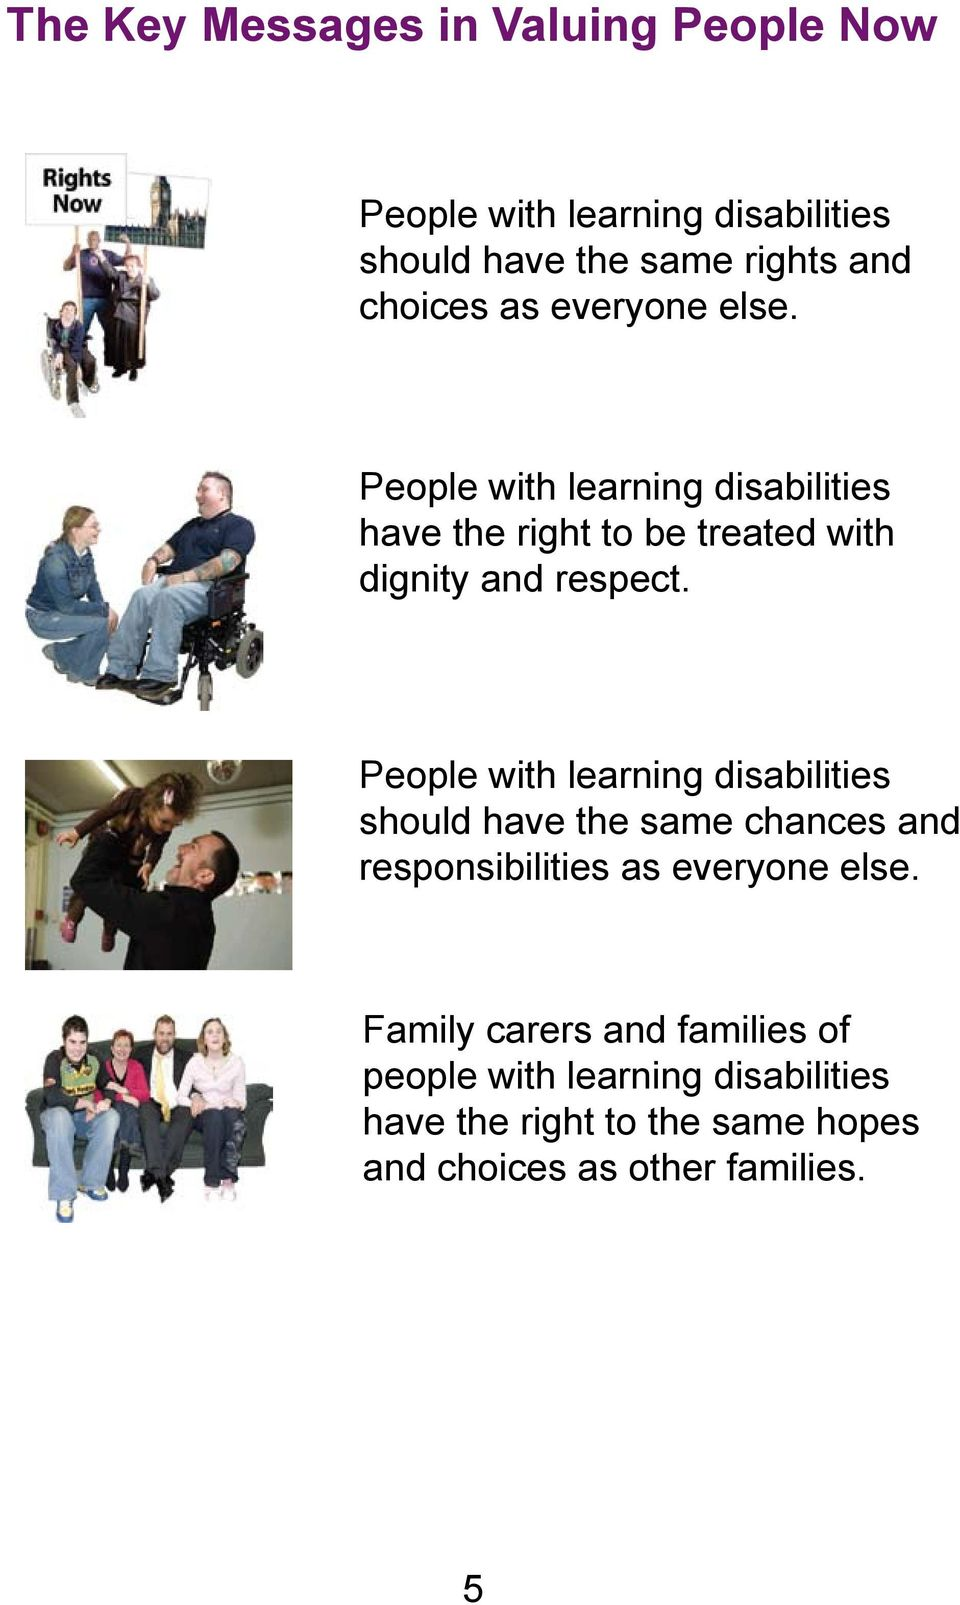 People with learning disabilities should have the same chances and responsibilities as everyone else.